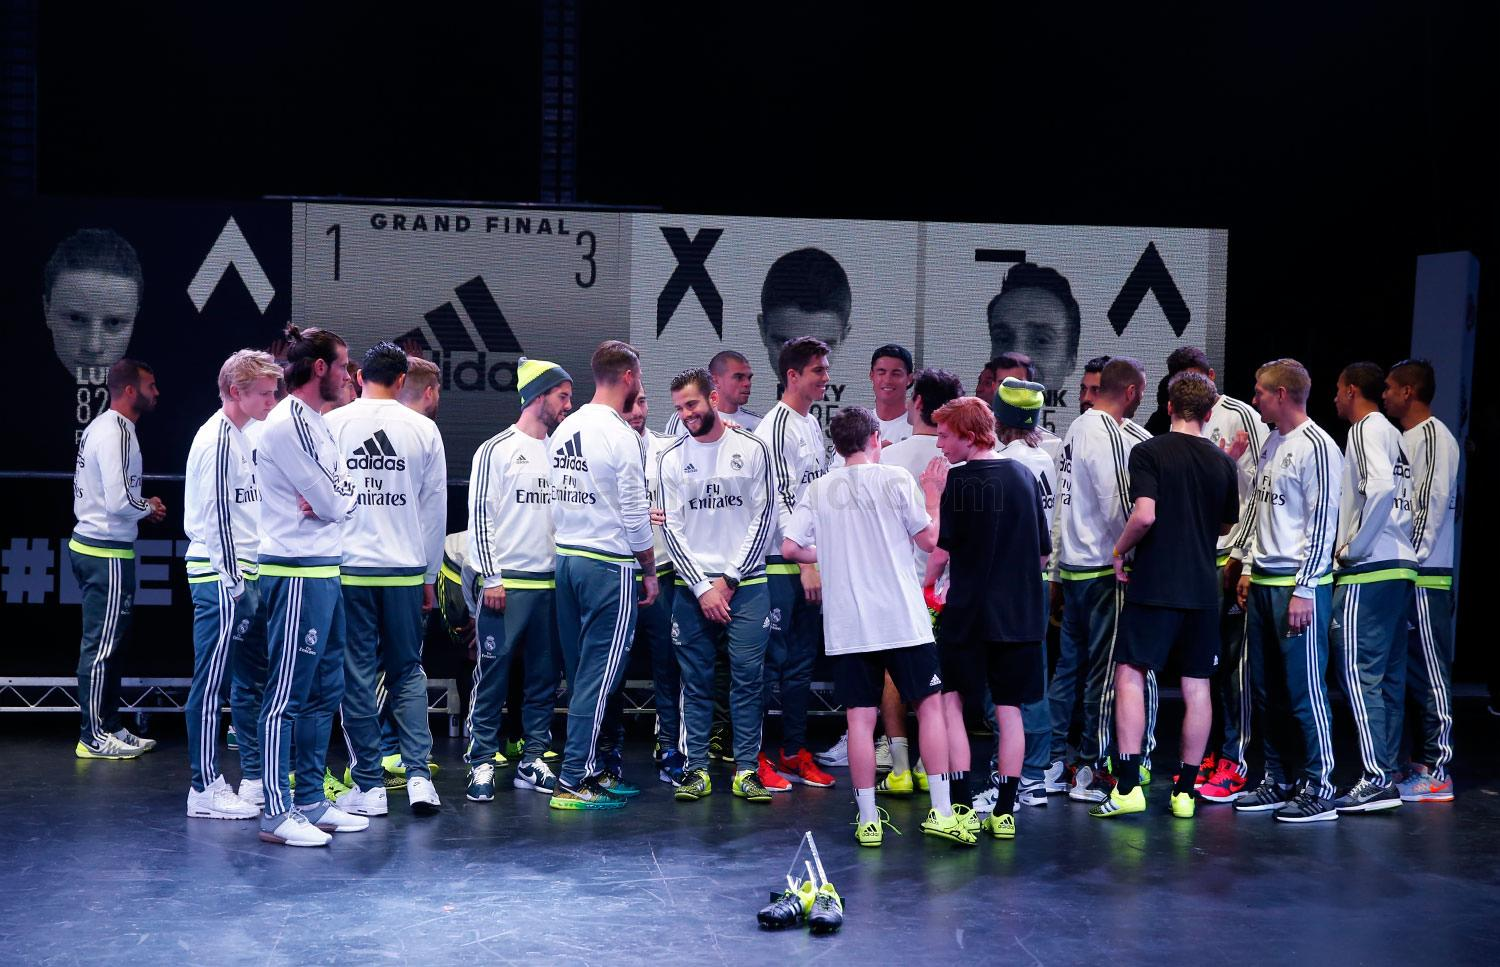 Real Madrid - Evento de Adidas en Melbourne - 19-07-2015